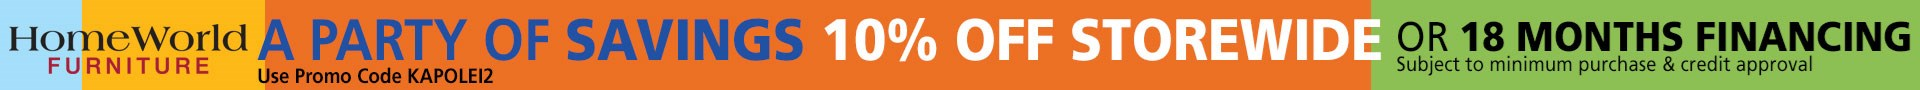 10% off storewide or 18 months financing; see store for details.